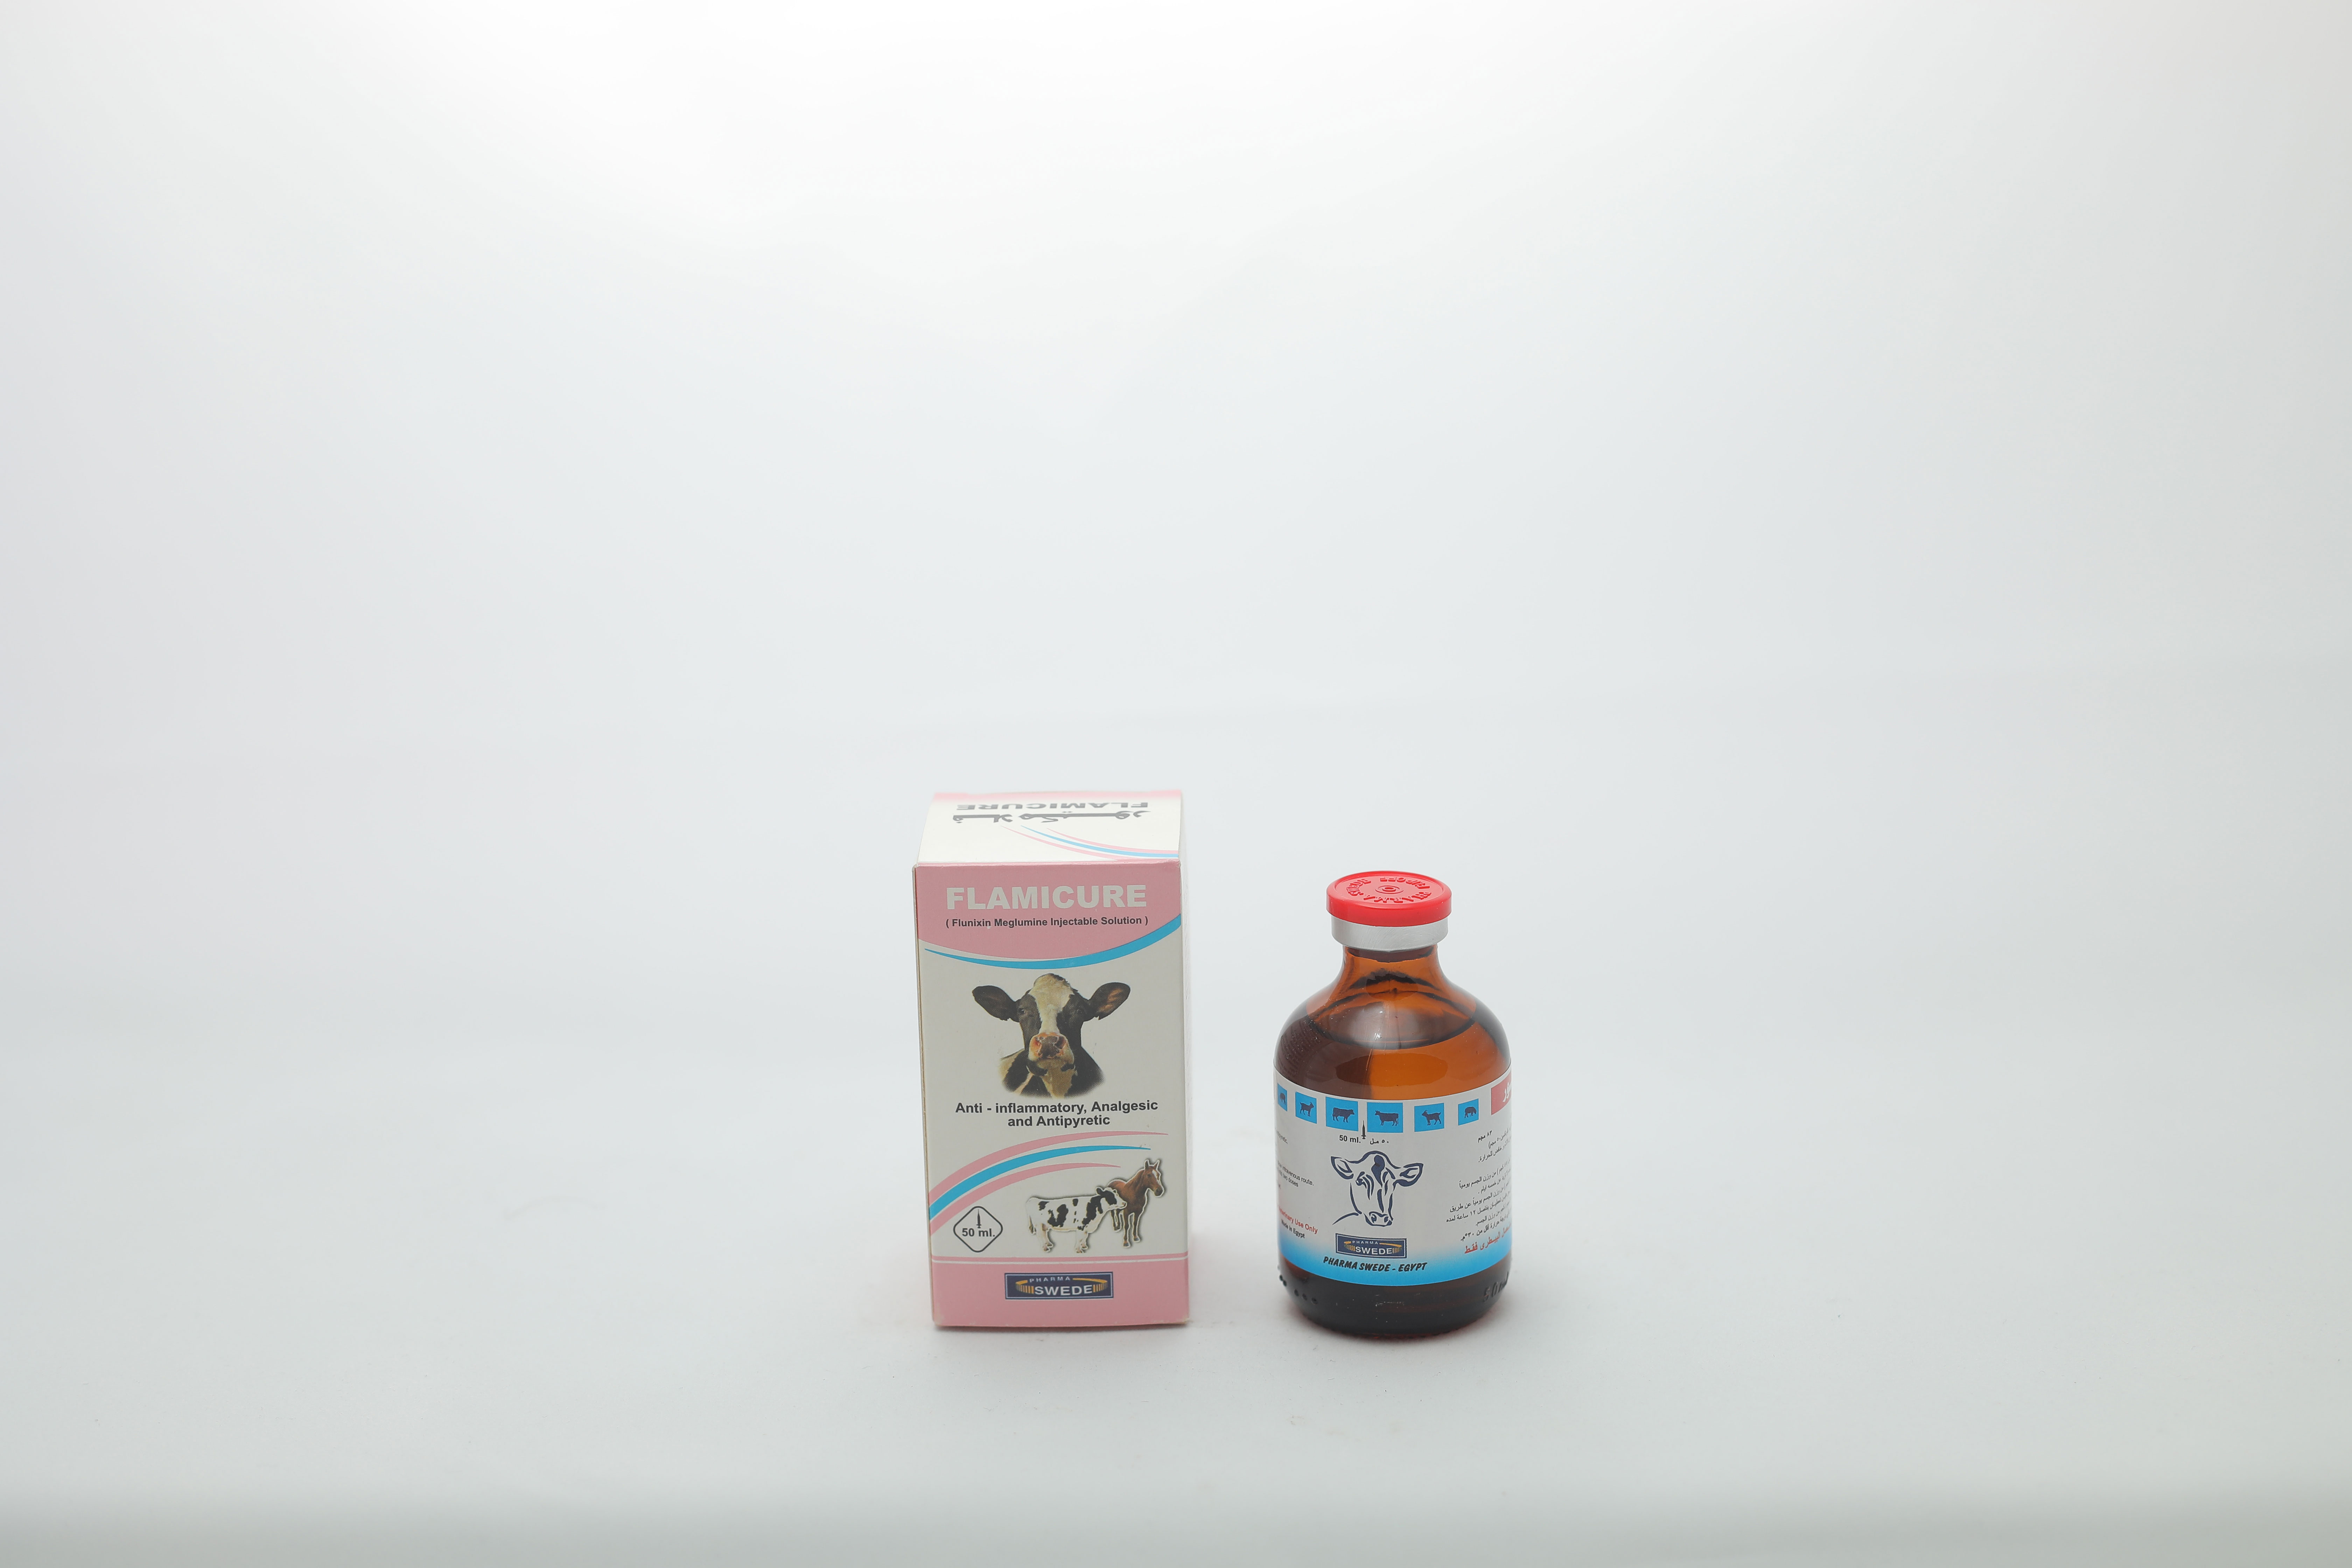 Flamicure injection